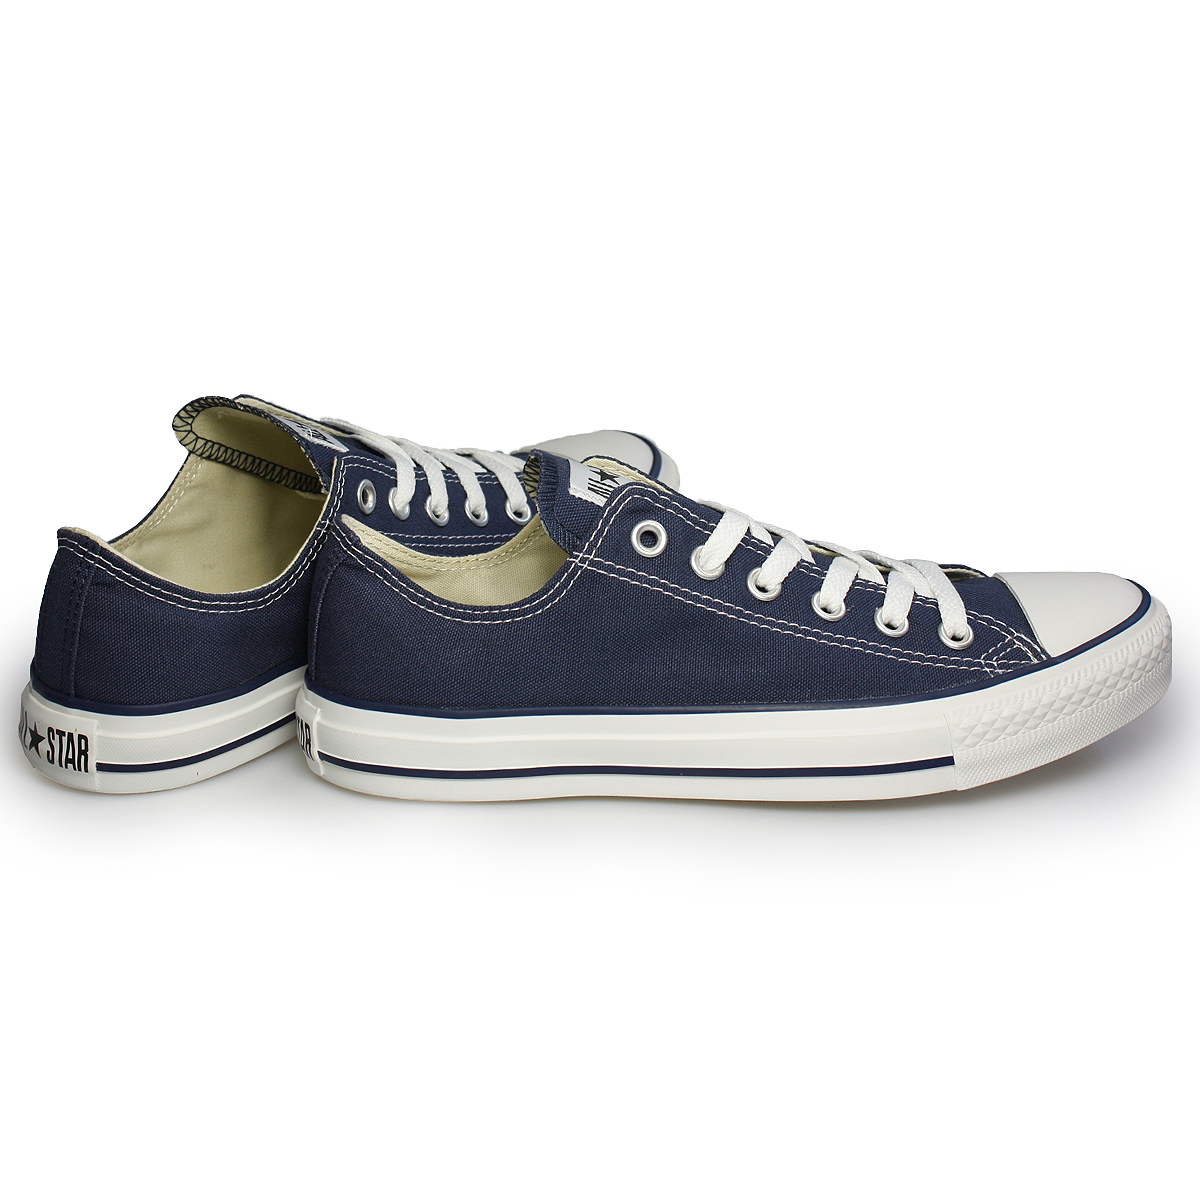 Converse All Star Navy Blue Canvas Trainers Sneakers Shoes ...